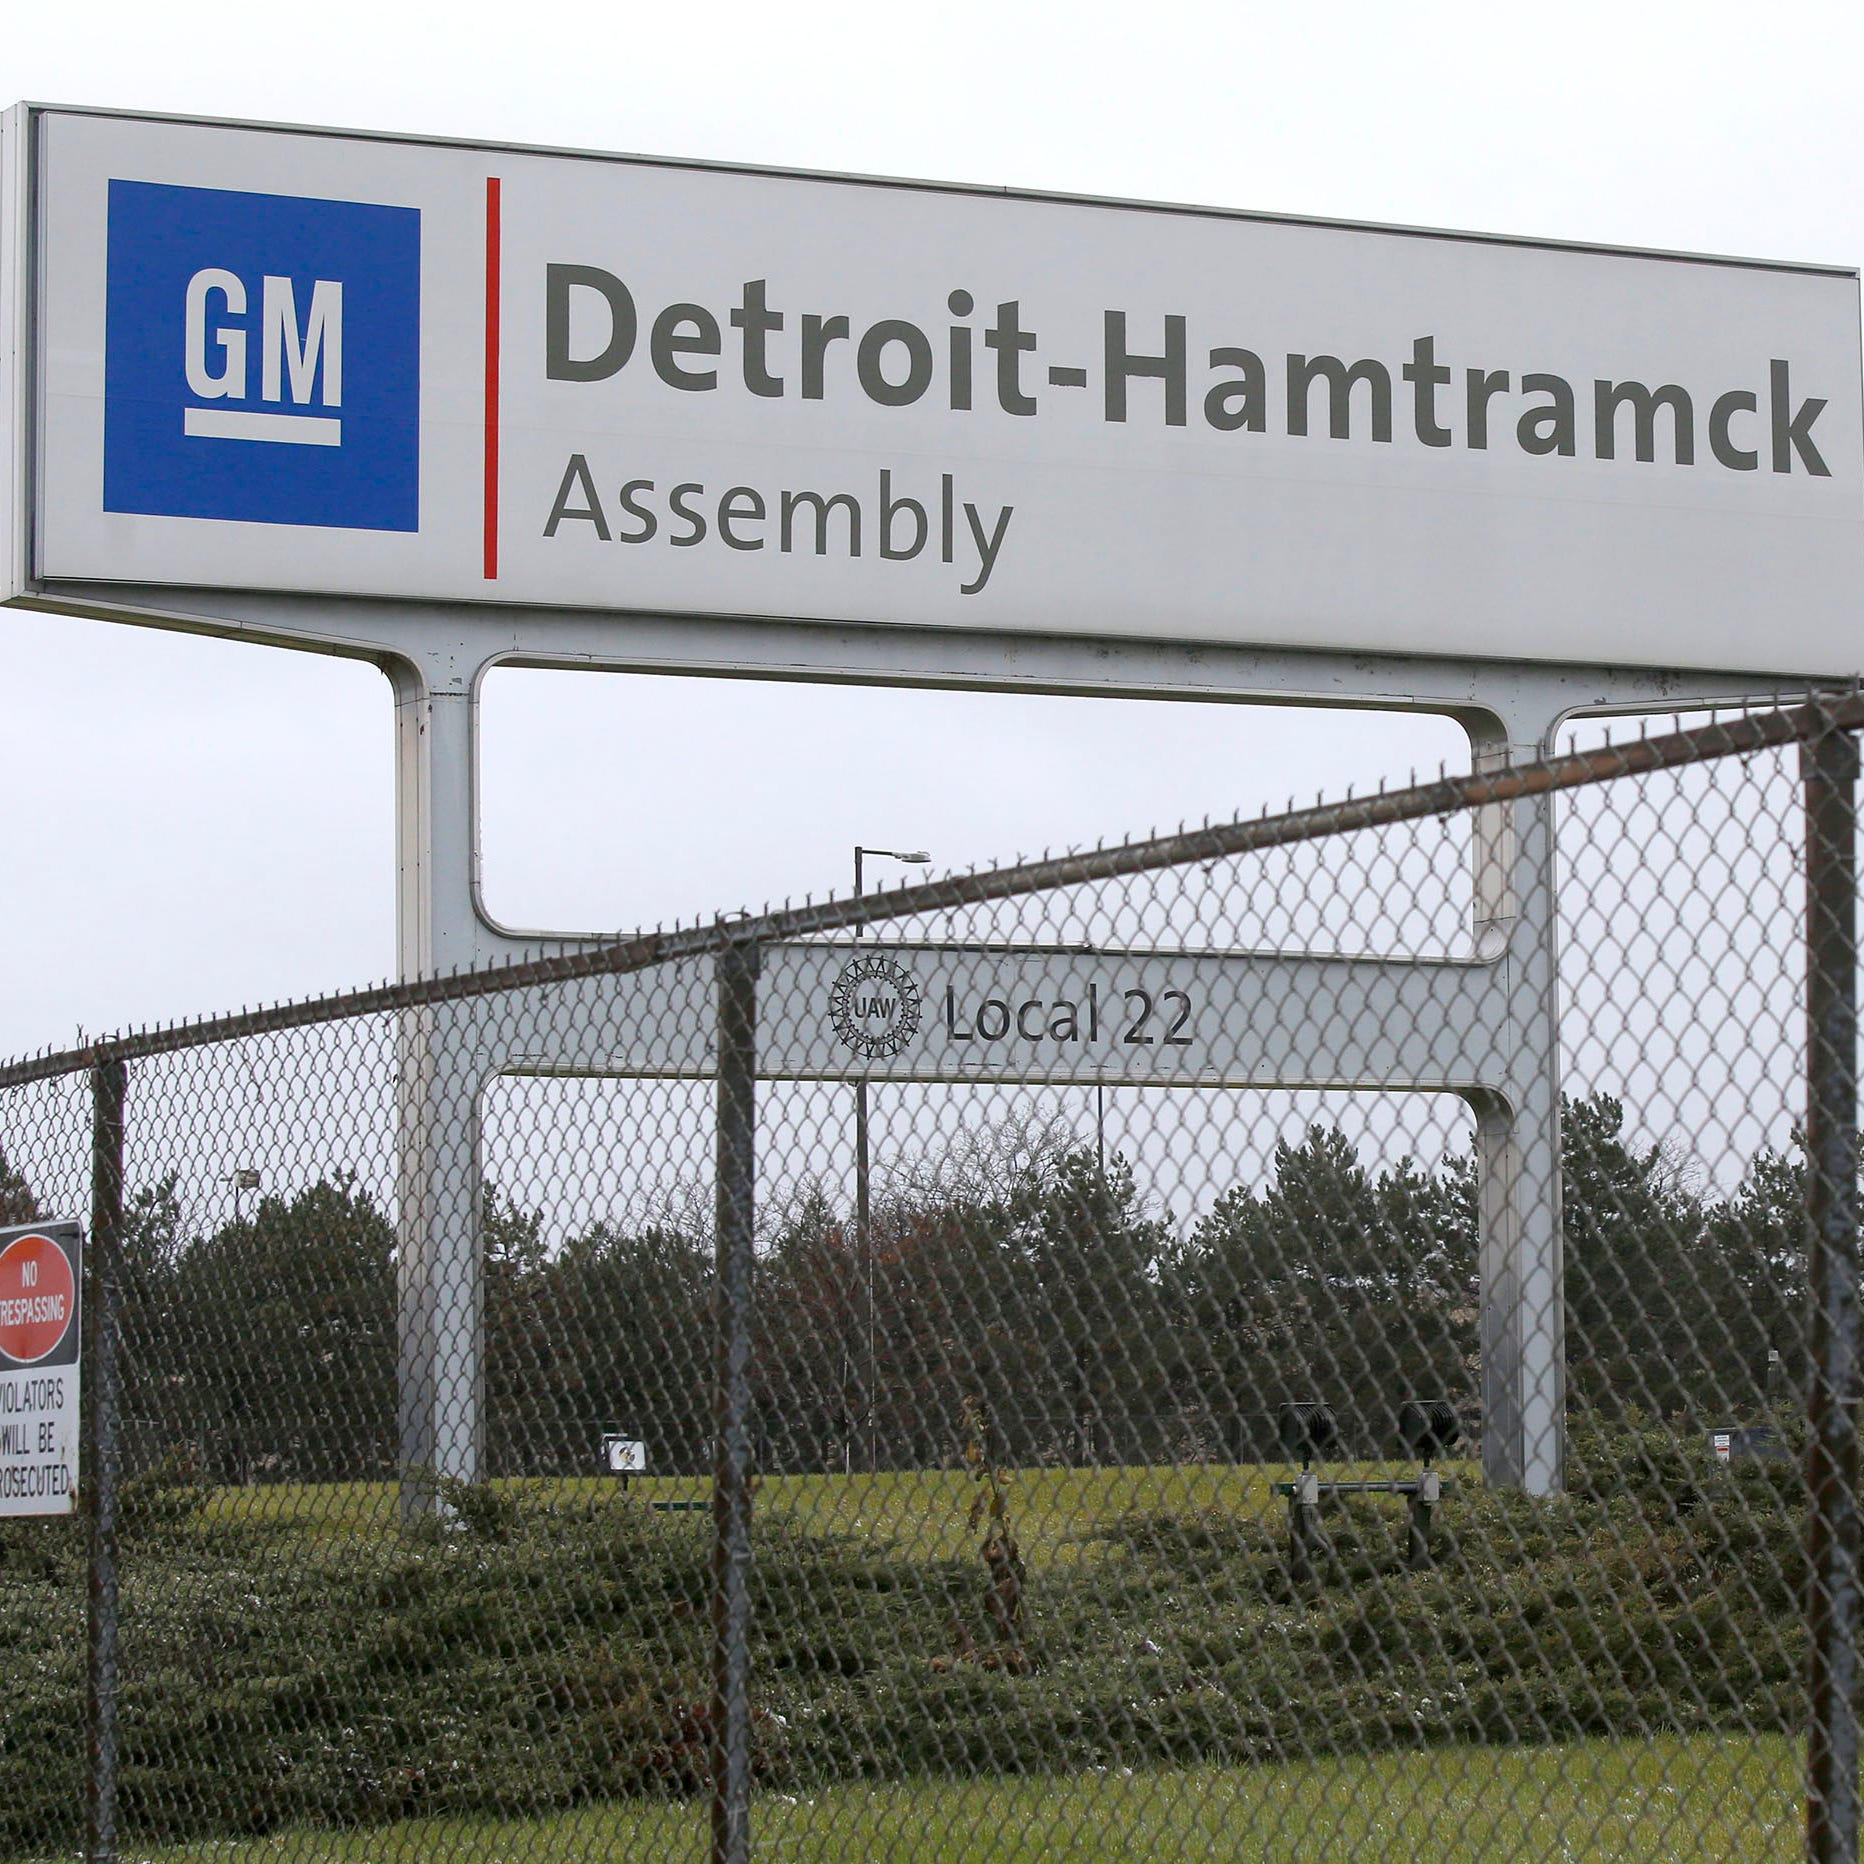 GM must reinvest in communities it's poised to abandon